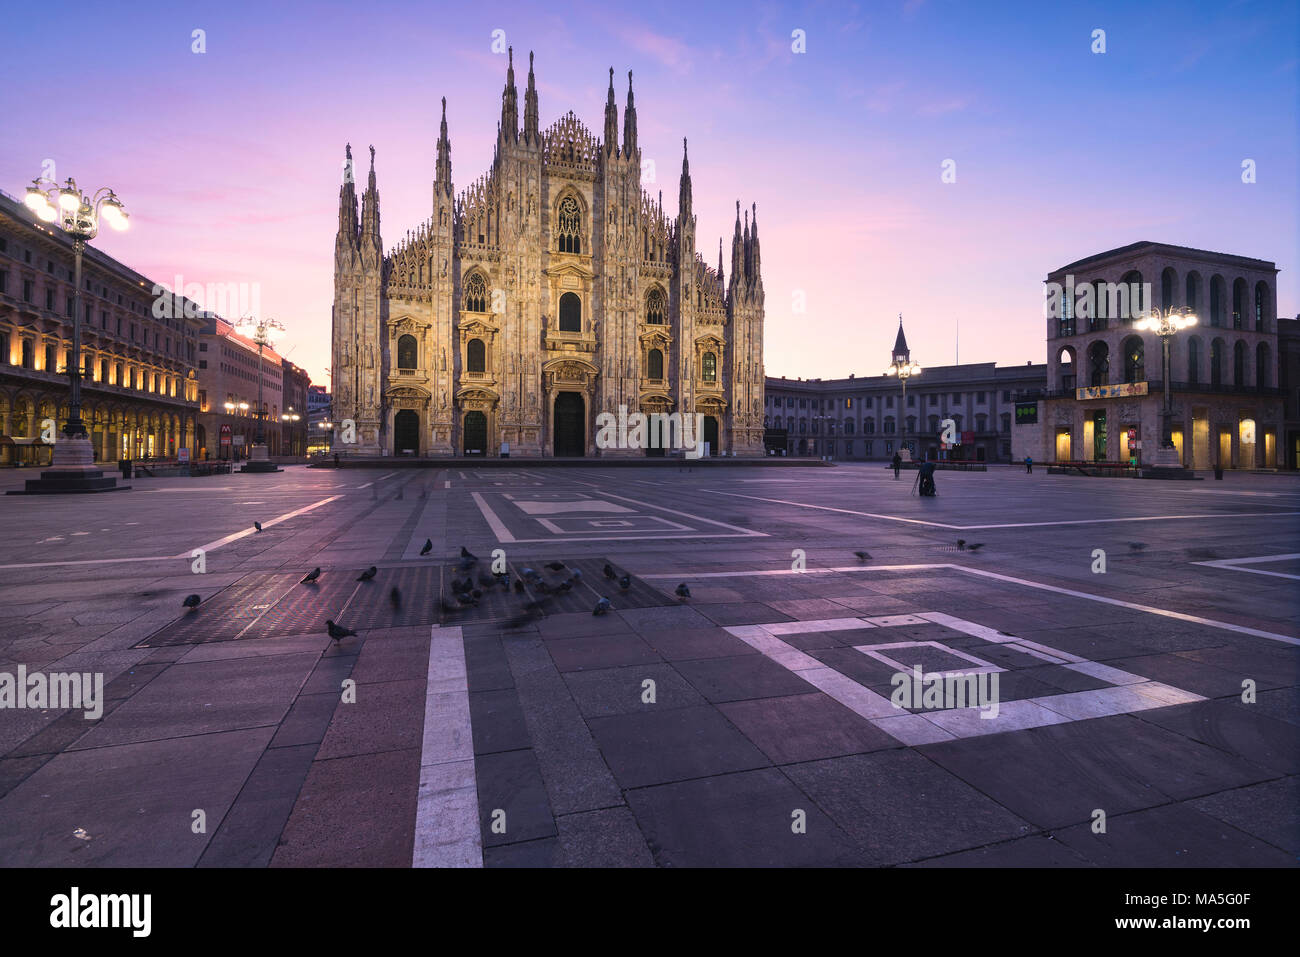 View of the square and the gothic Duomo, the icon of Milan, Lombardy, Italy, Europe. Stock Photo